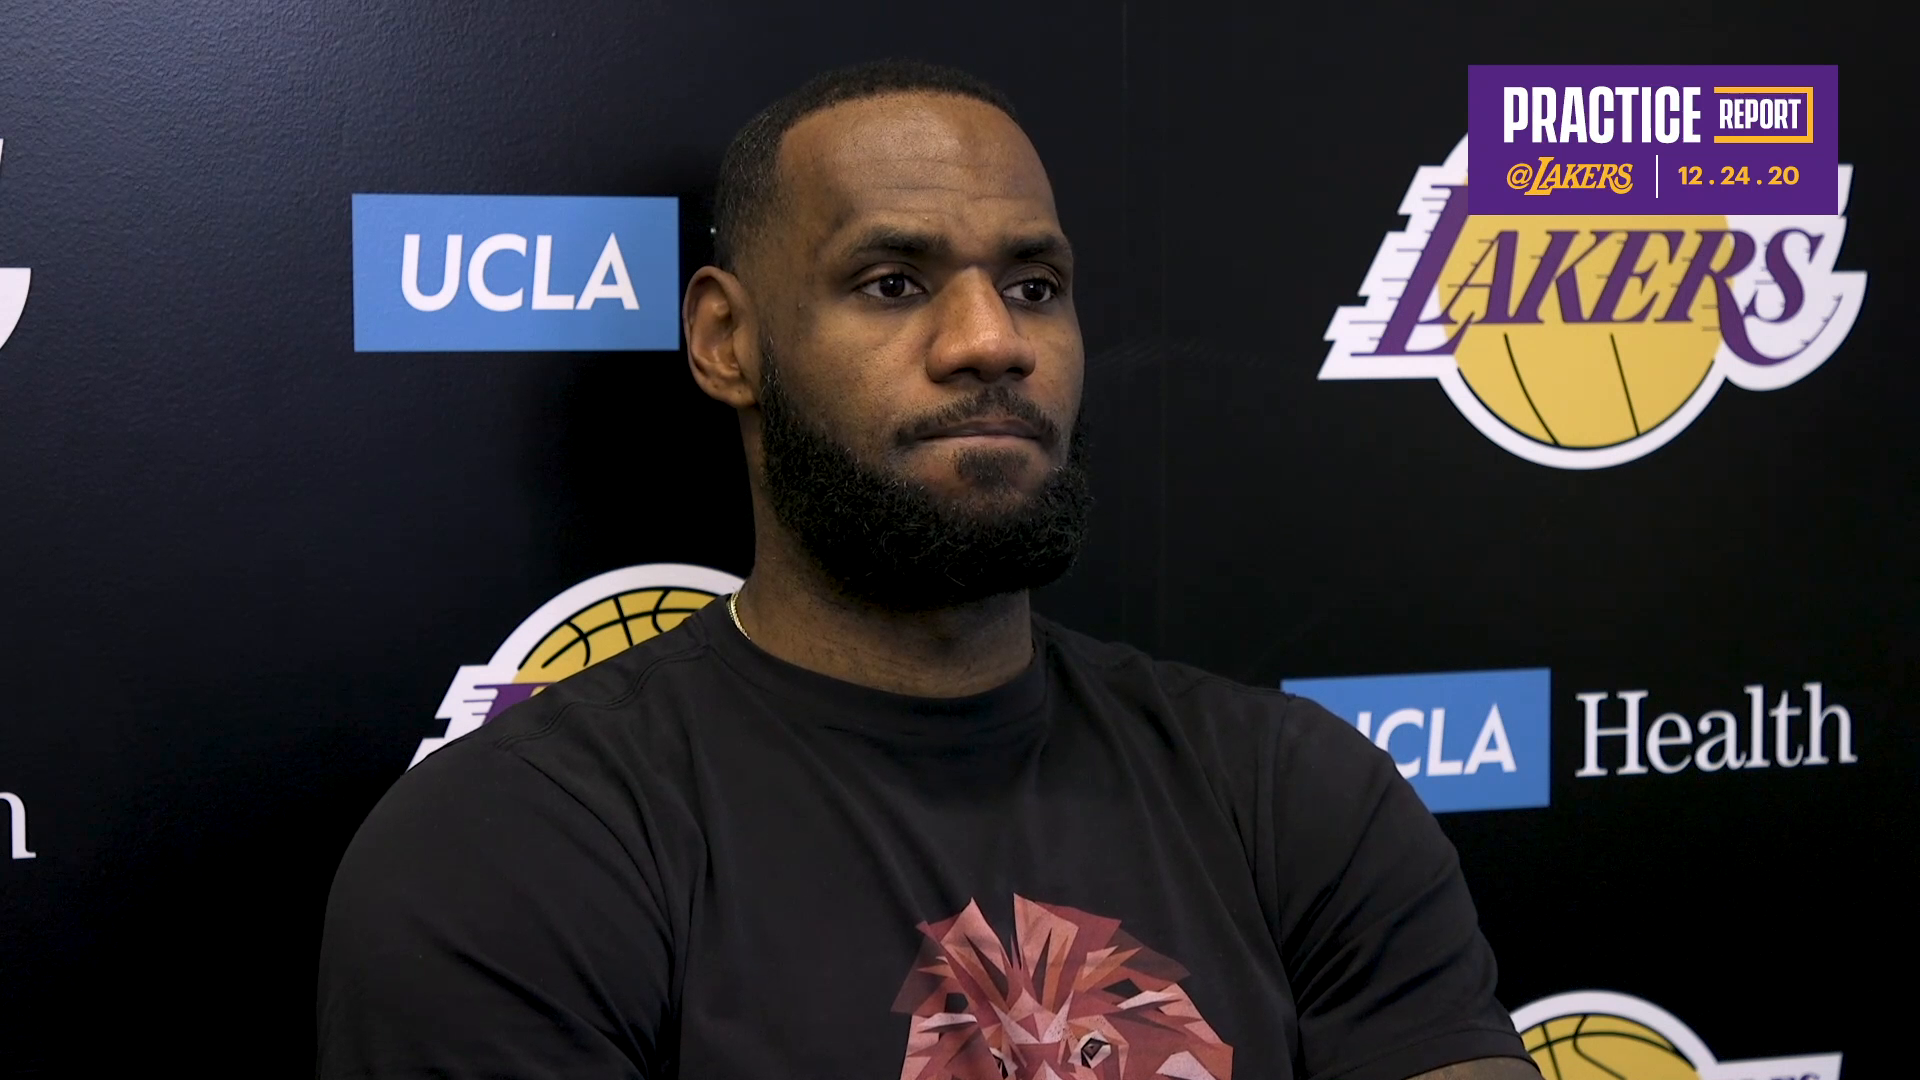 Practice Report: LeBron James (12/24/20)